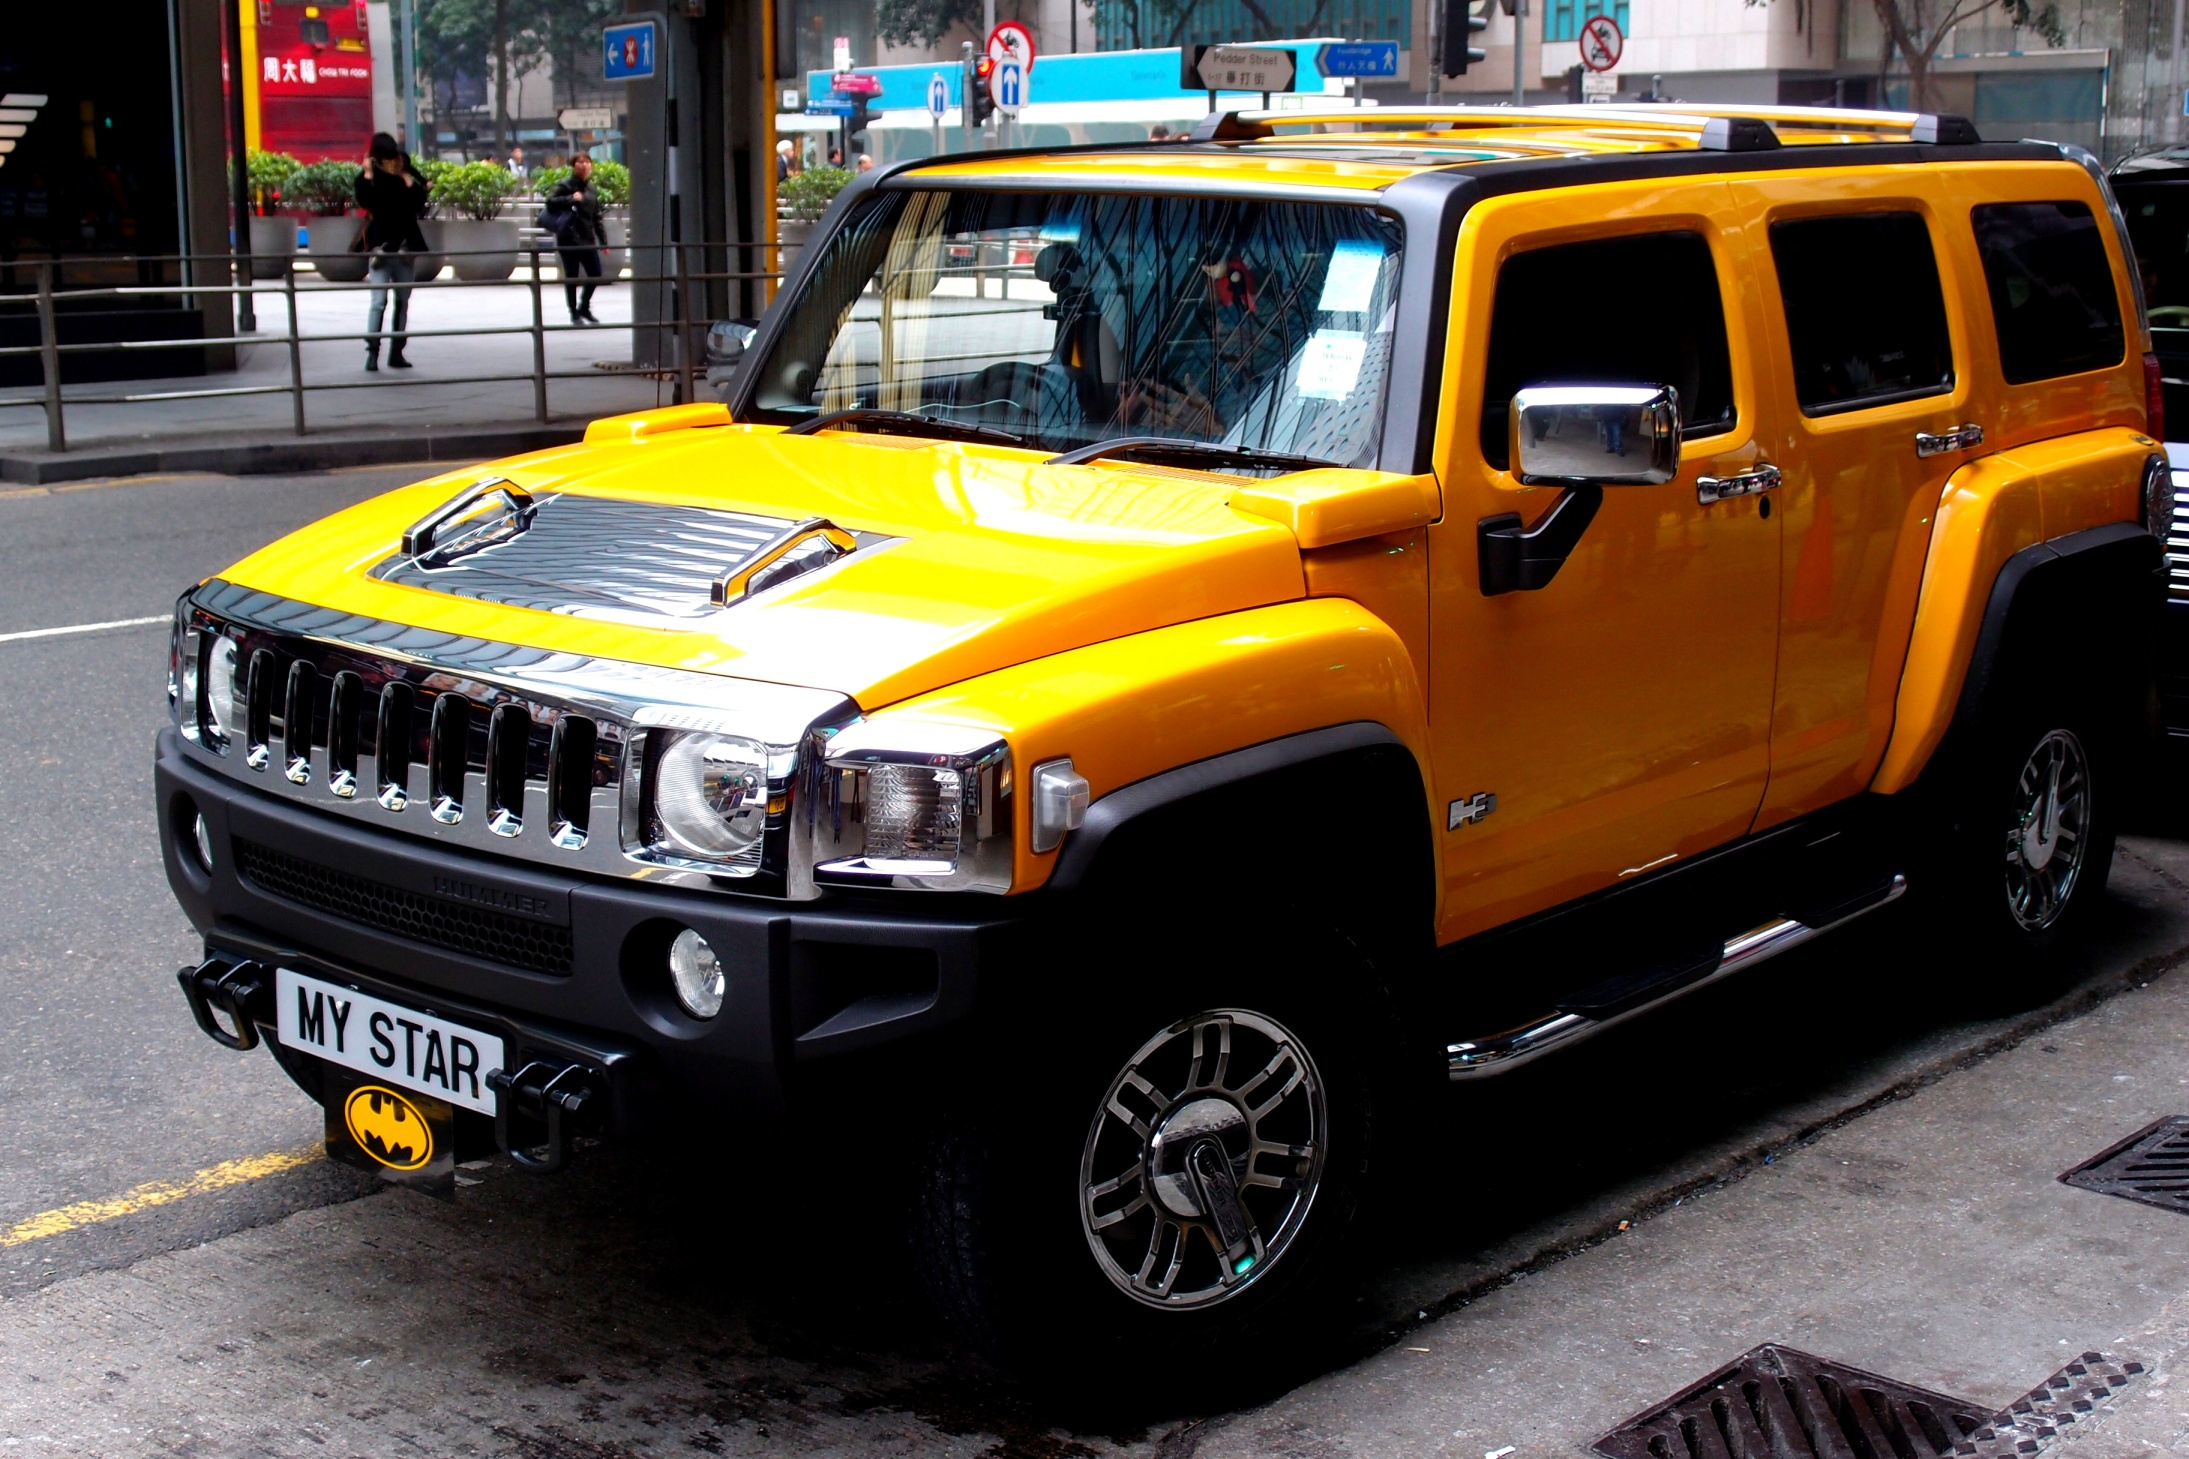 This is NOT my Hummer